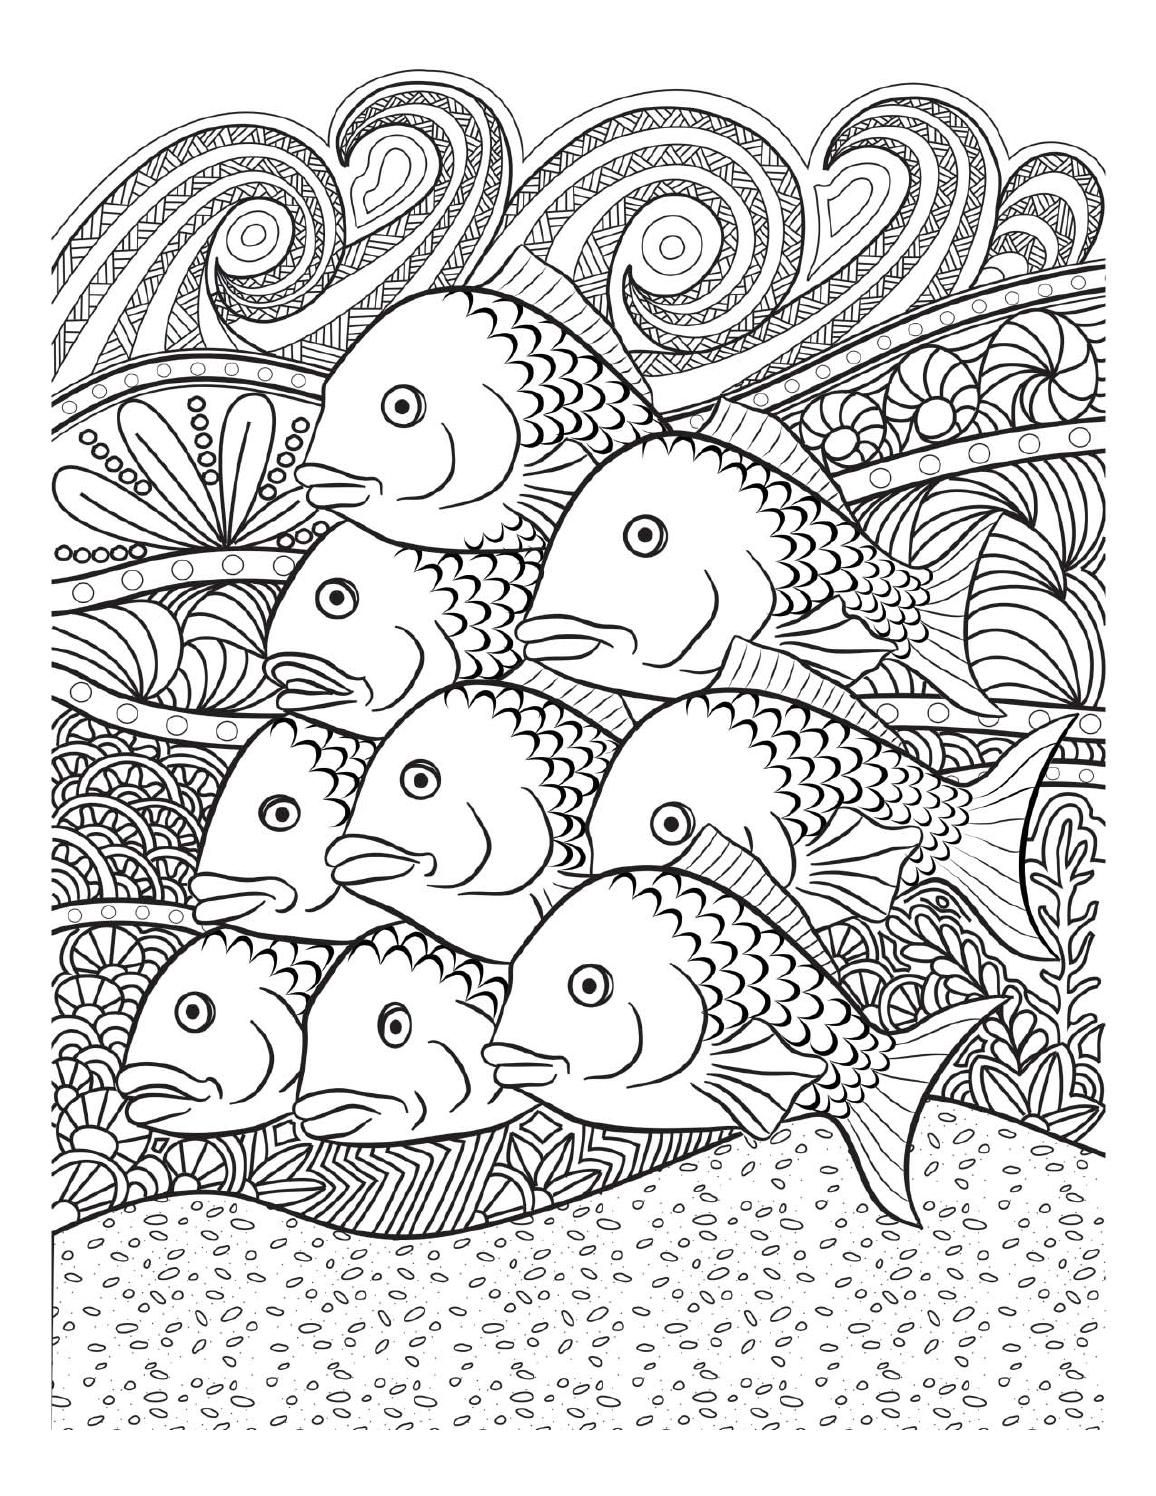 Stress relieving coloring - Creative Oceana Adult Coloring Book Twenty Creative And Stress Relieving